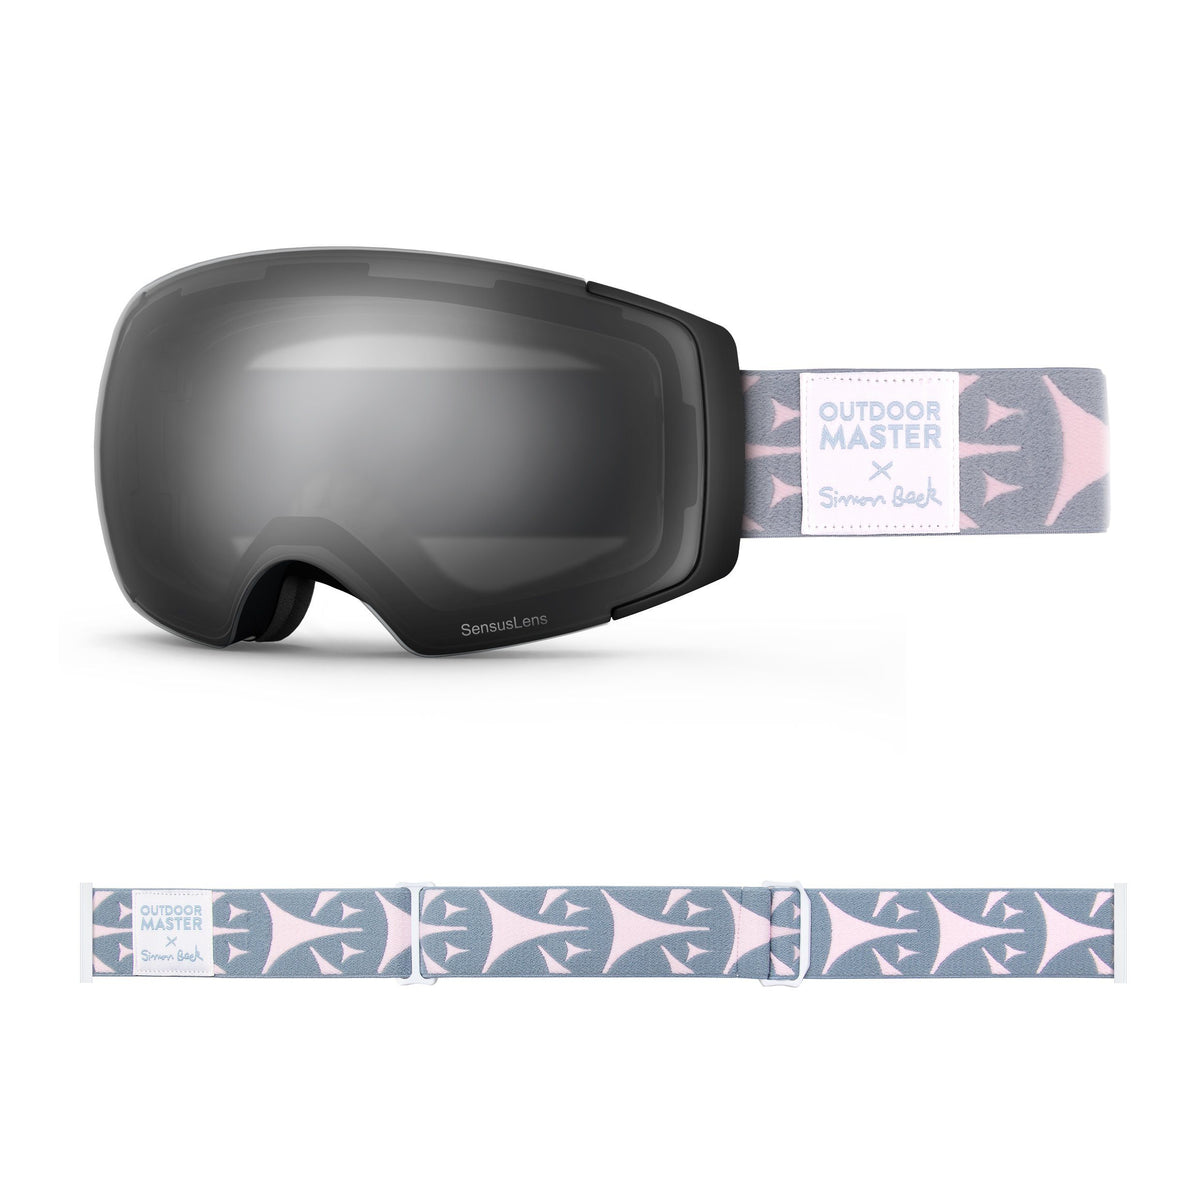 OutdoorMaster x Simon Beck Ski Goggles Pro Series - Snowshoeing Art Limited Edition OutdoorMaster SensusLens VLT 13-60% From Light to Dark Grey Bouncy Triangles